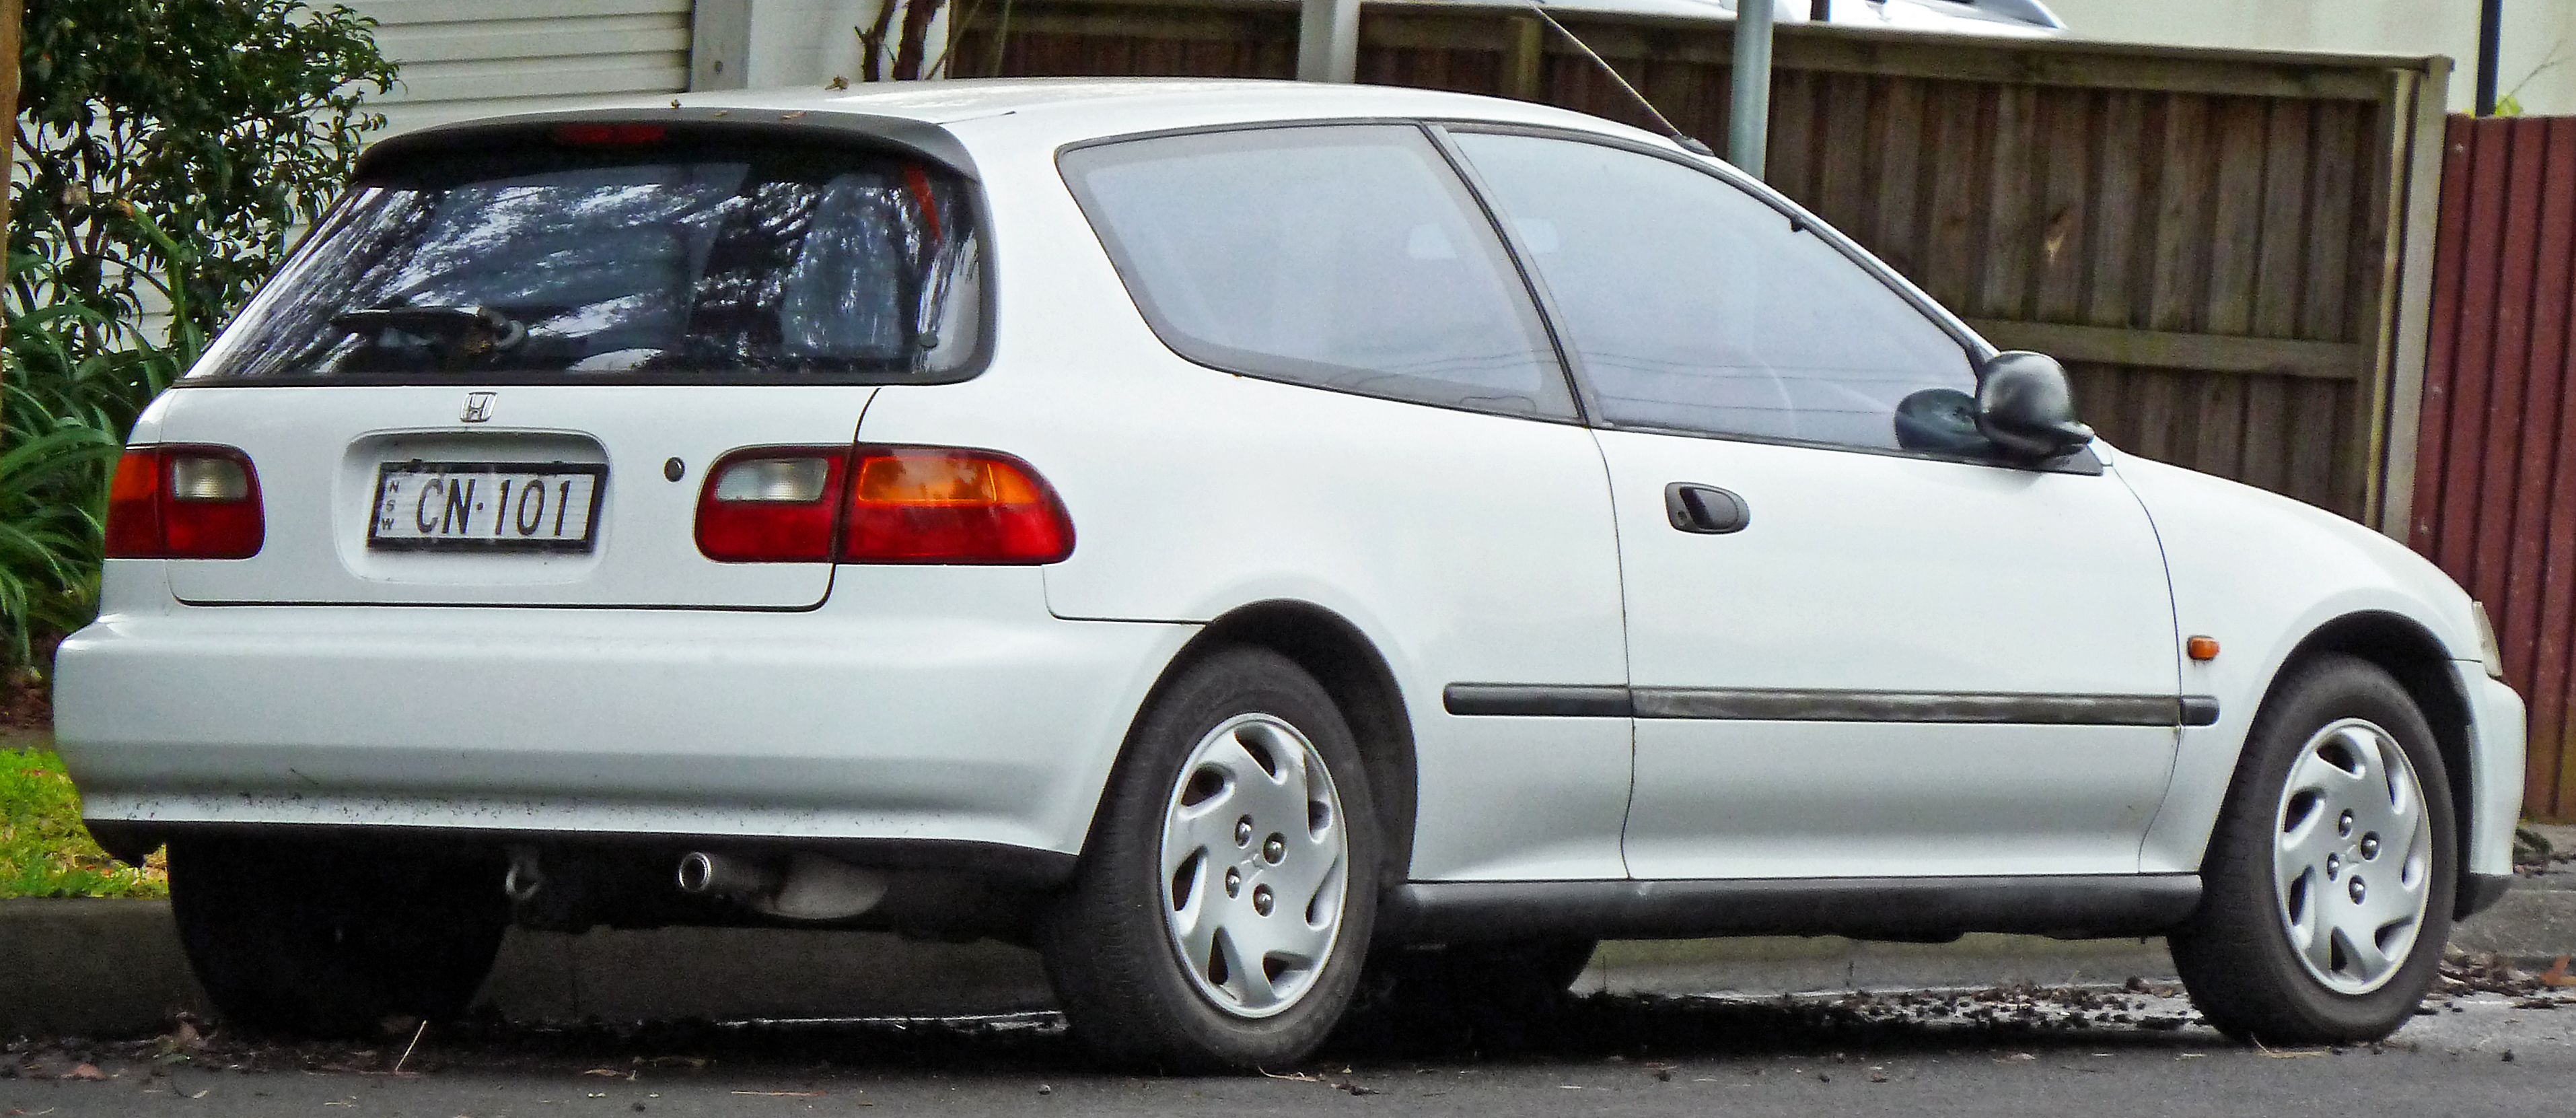 File 1991 1995 Honda Civic Breeze 3 Door Hatchback 2011 06 15 Jpg Wikimedia Commons